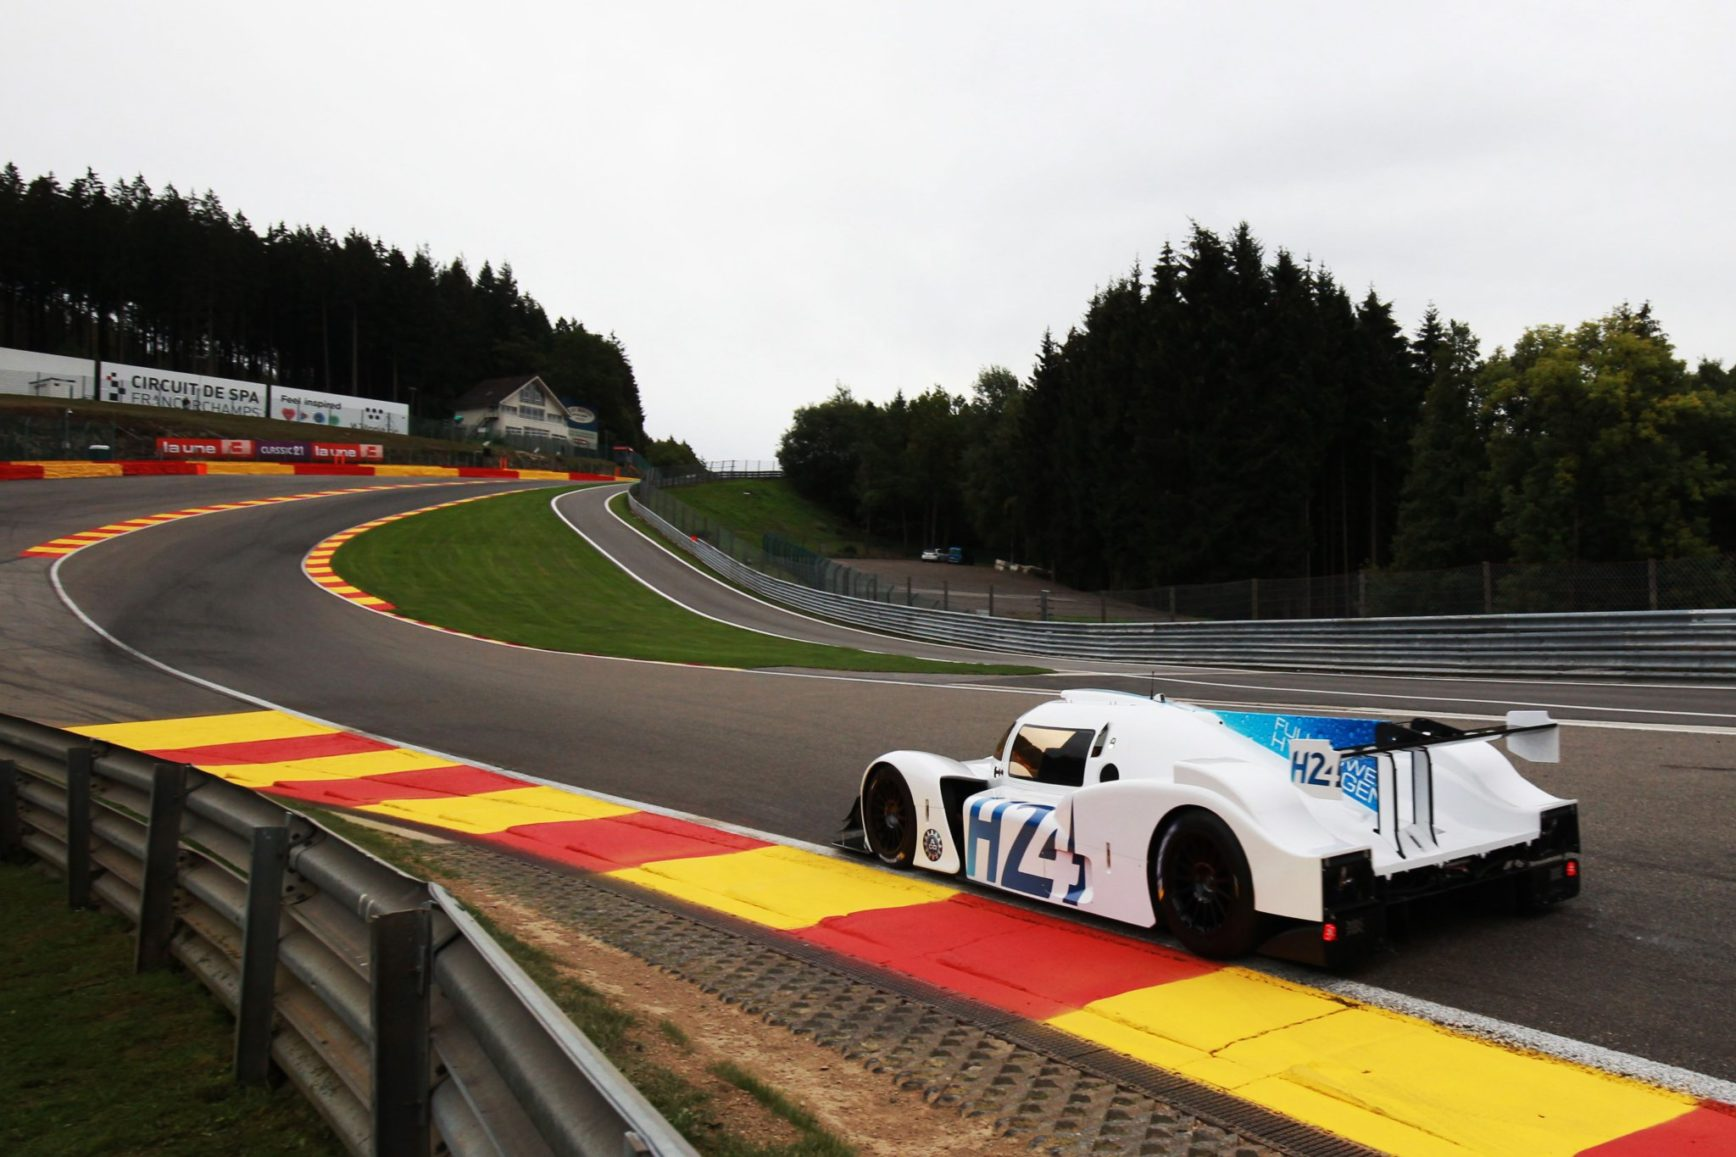 LMPH2G - 2018 - track - Spa - Raidillon